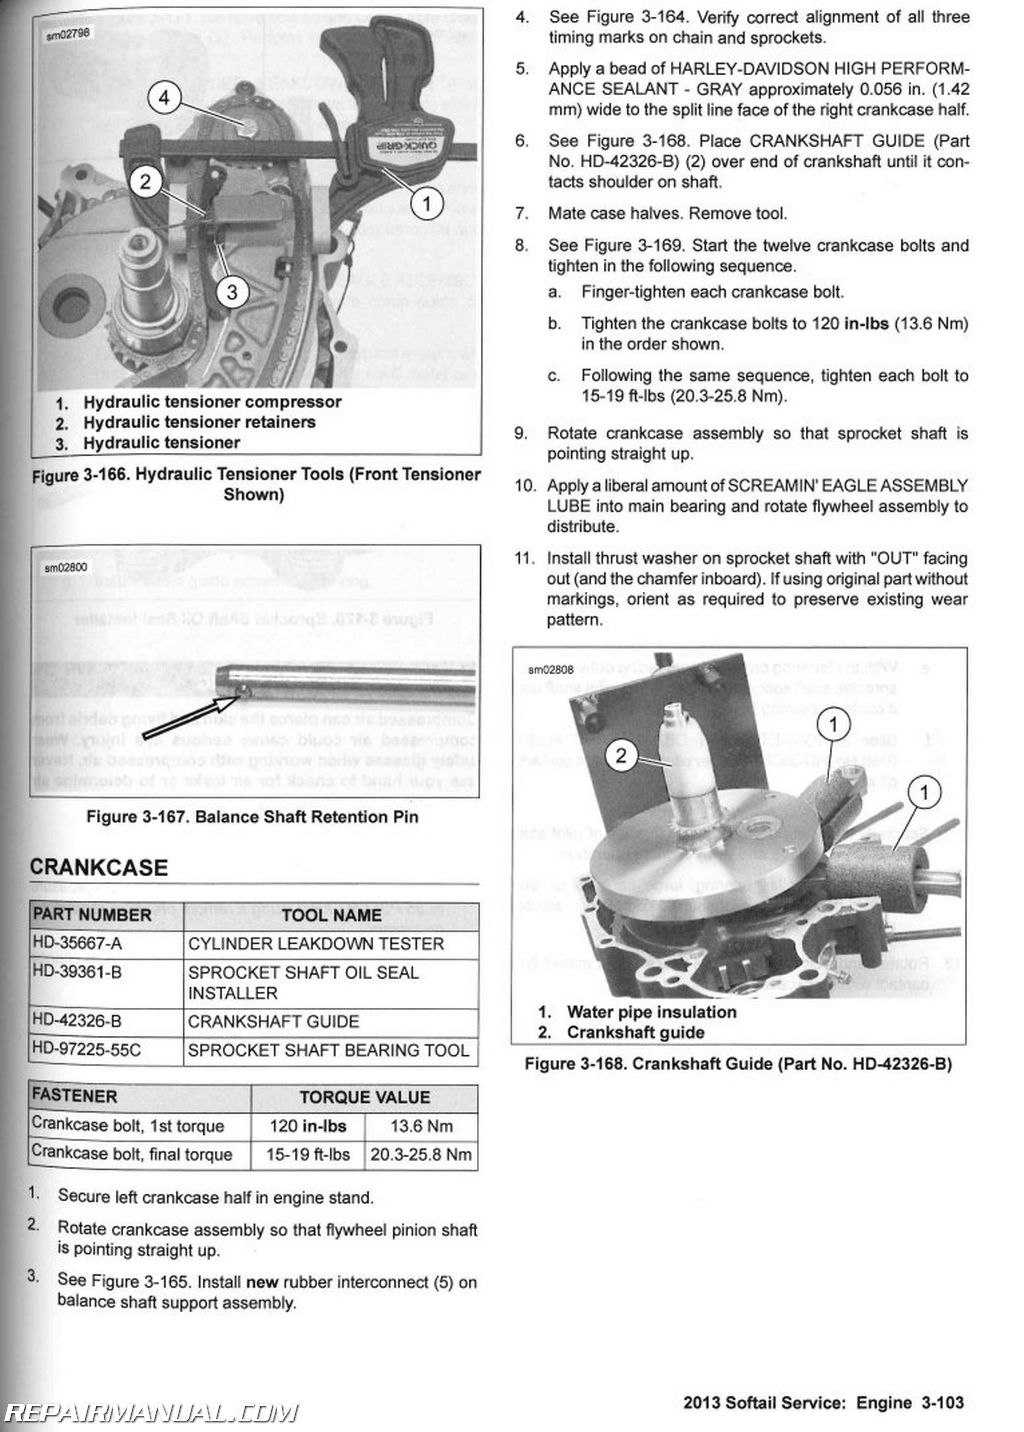 600 carb vacuum diagram on wiring diagram 2002 harley davidson fatboy